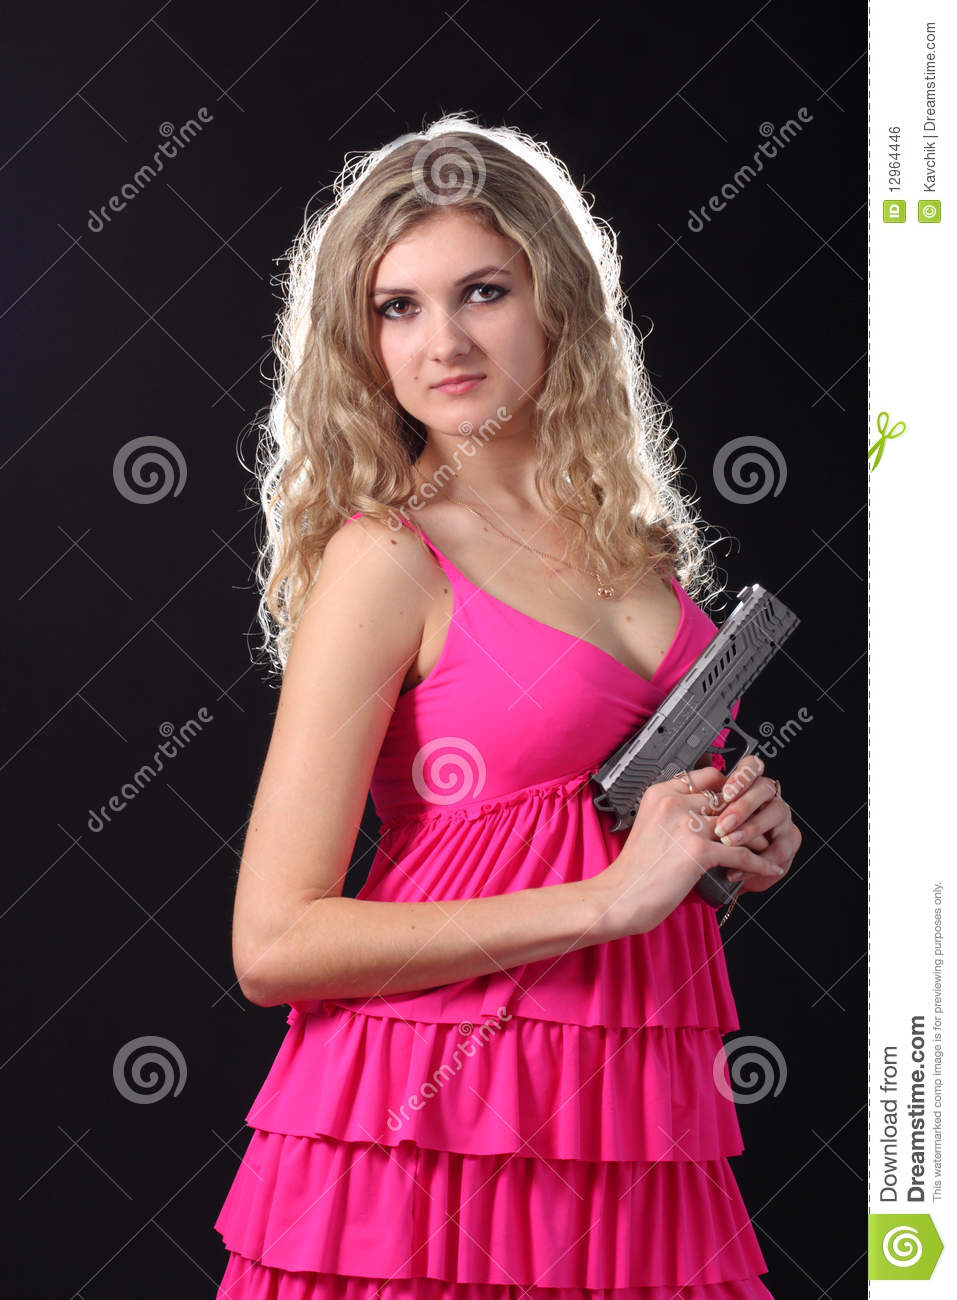 Girl With The Blog: Young Girl With Pistol Royalty Free Stock Image